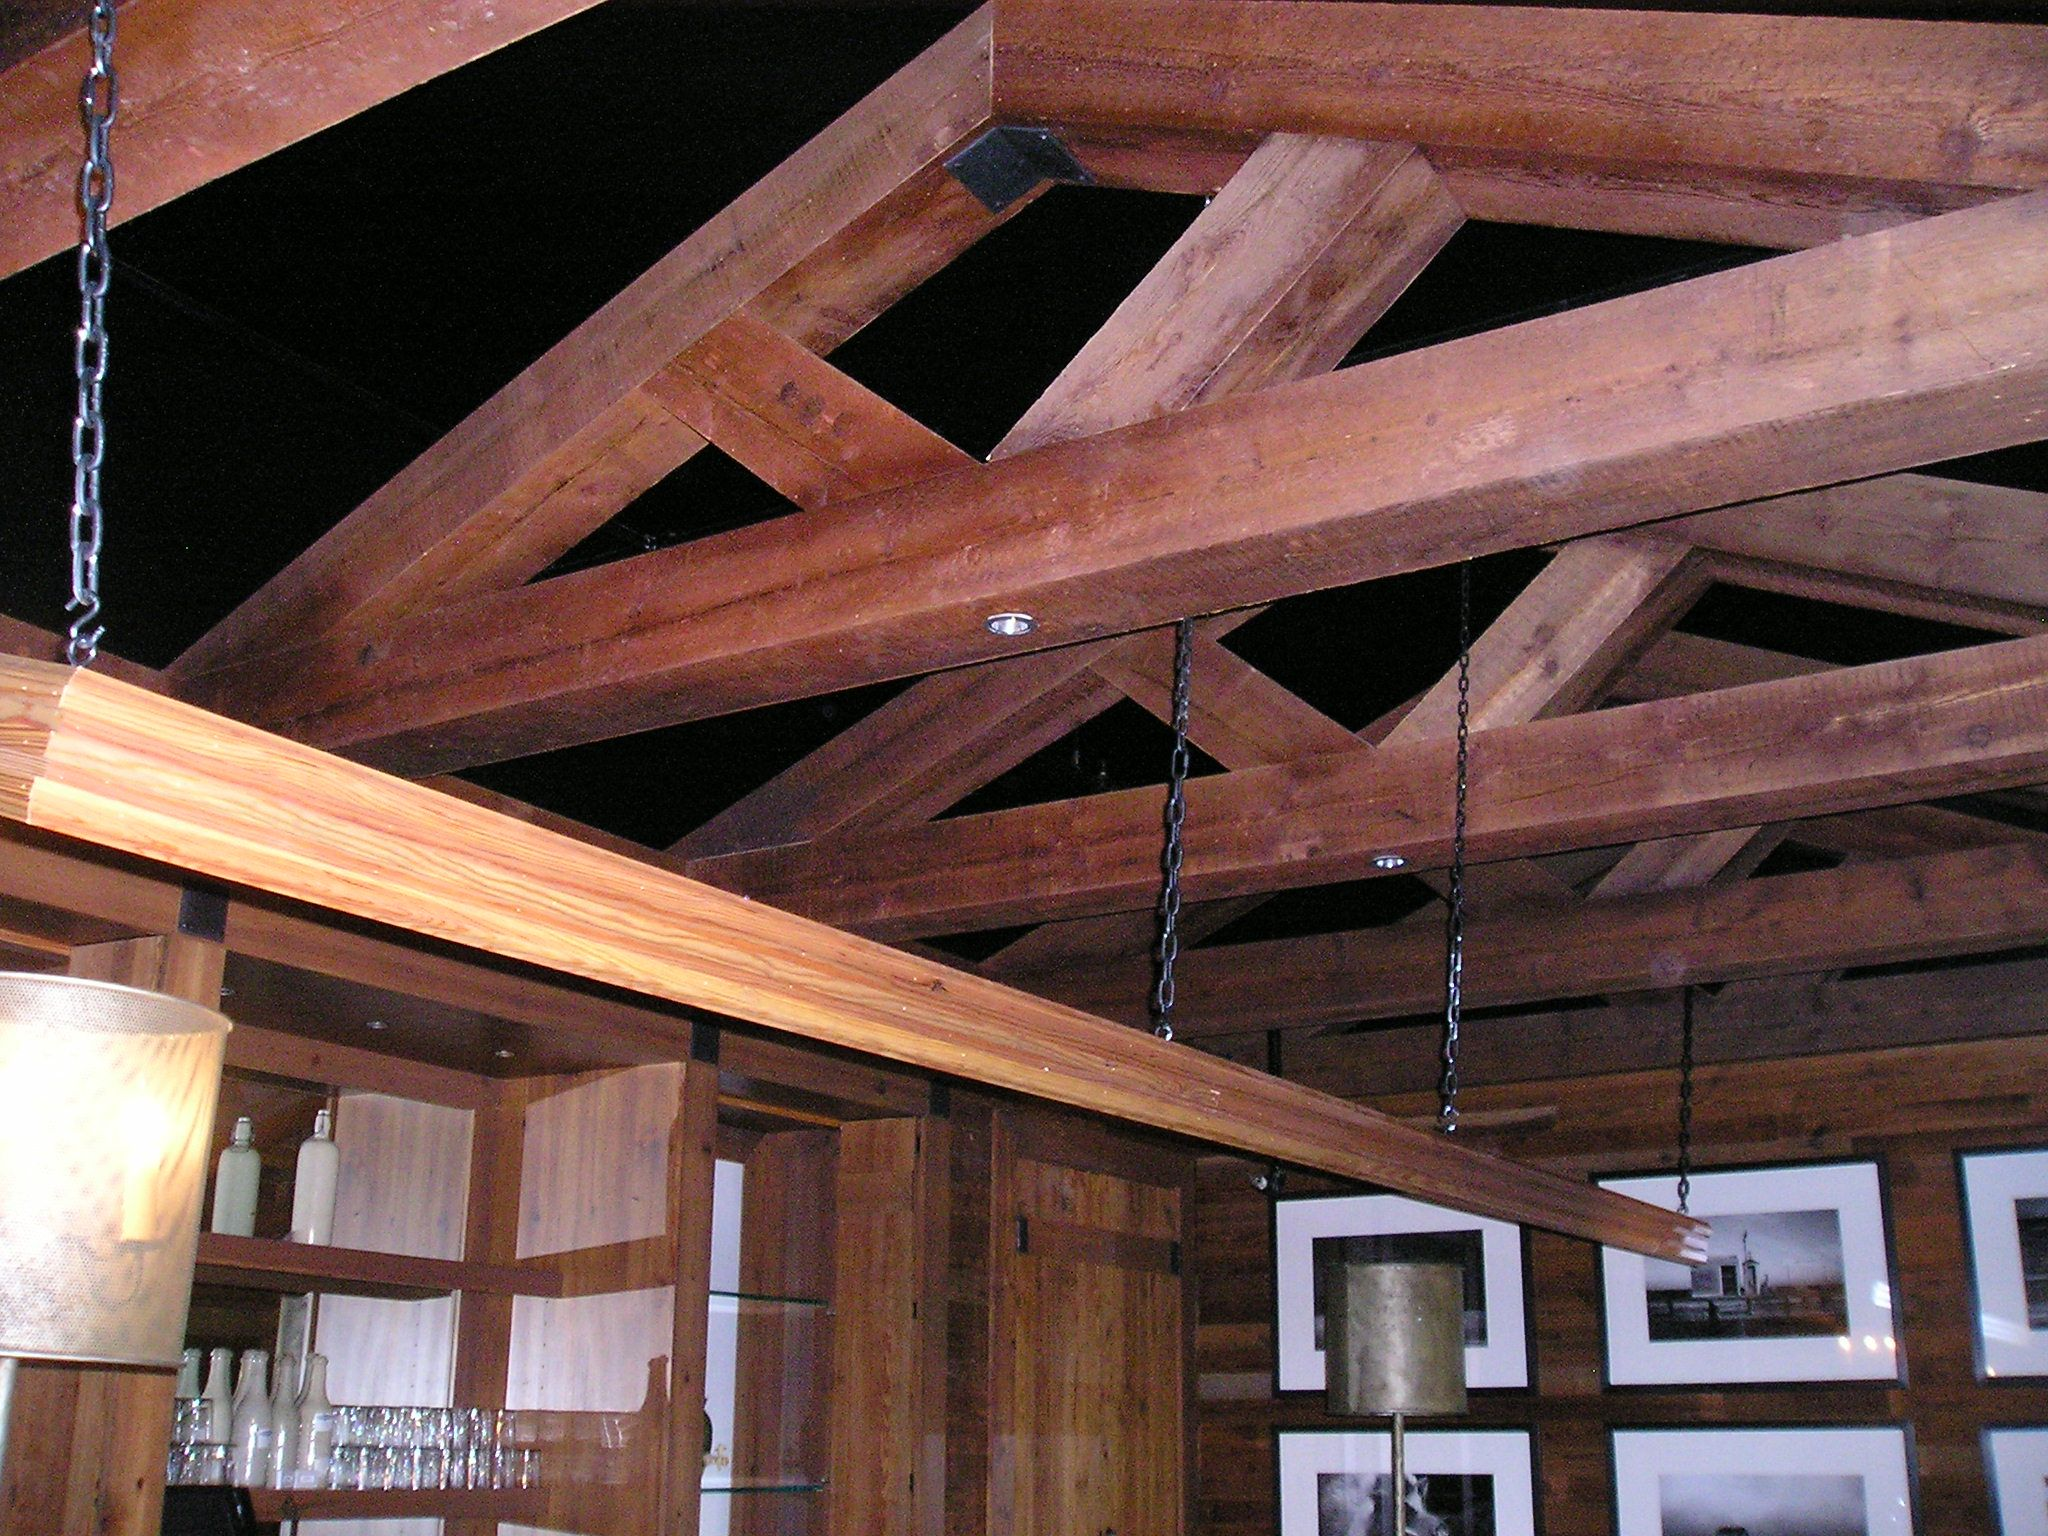 Heart Pine Rough Sawn Beams In Timber Frame Style With Barn Board